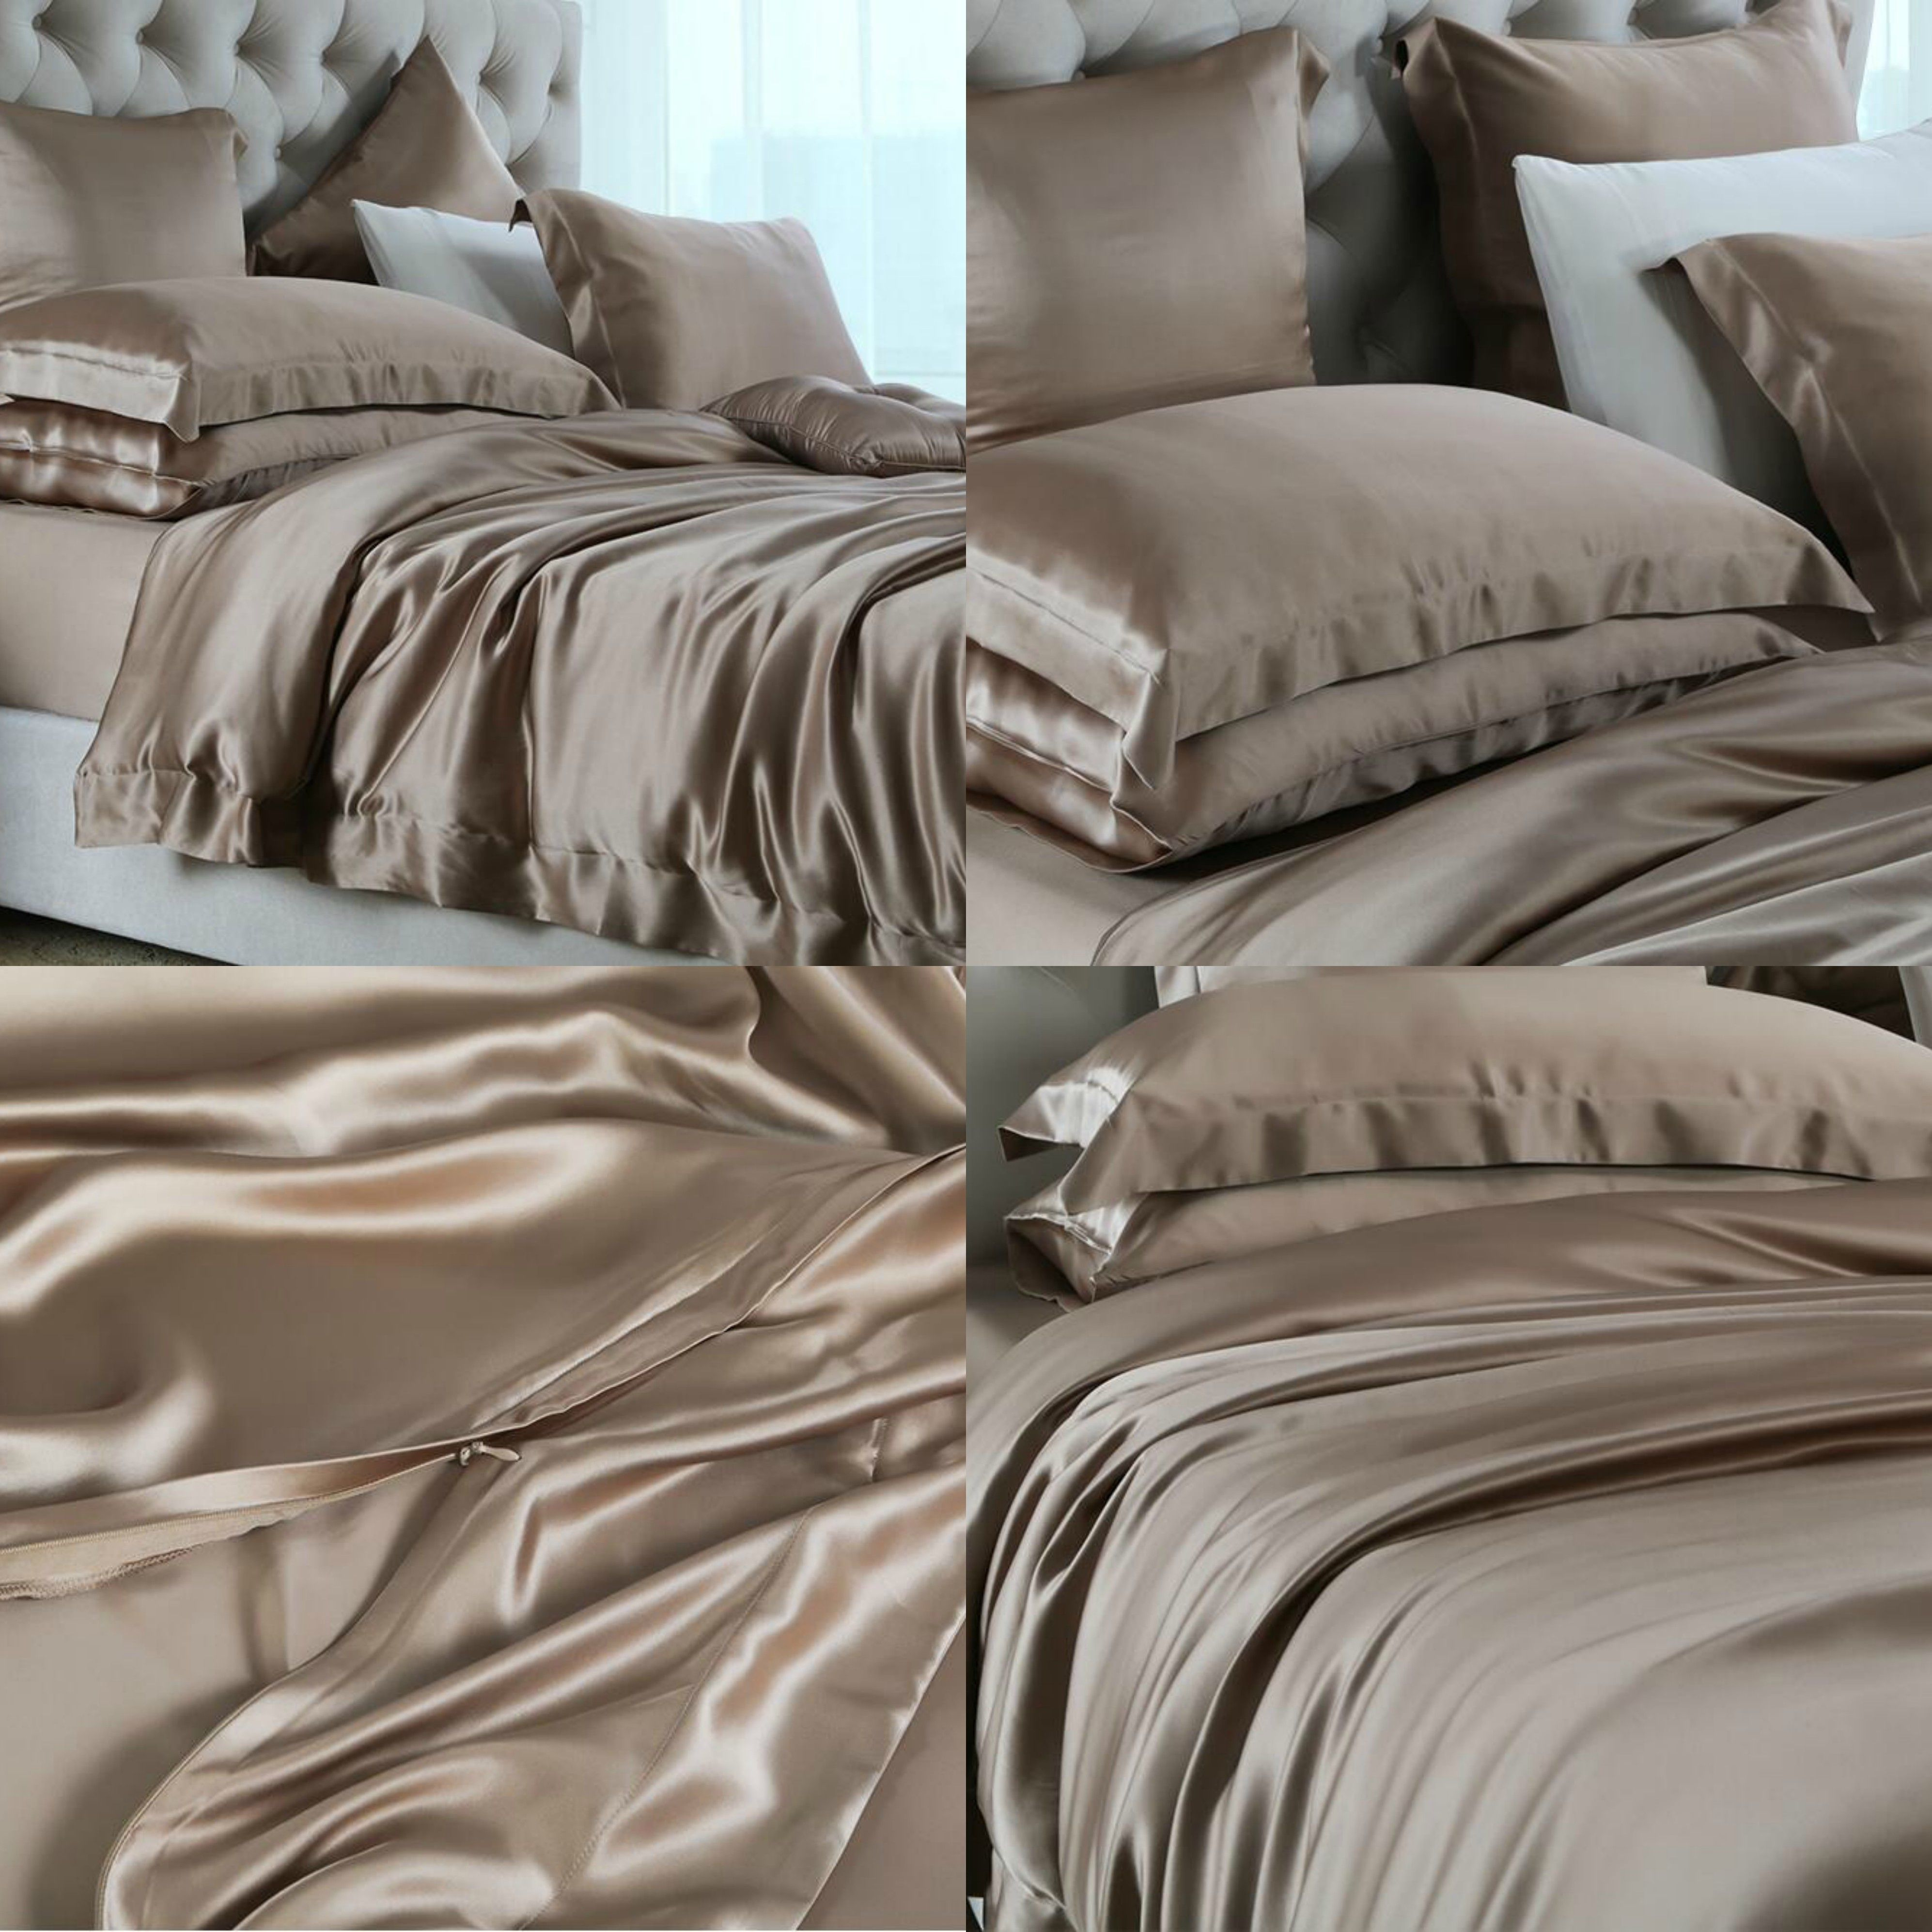 of elle covers alix duvet pure shipping amp cover free mulberry comforter silk today elegant twin